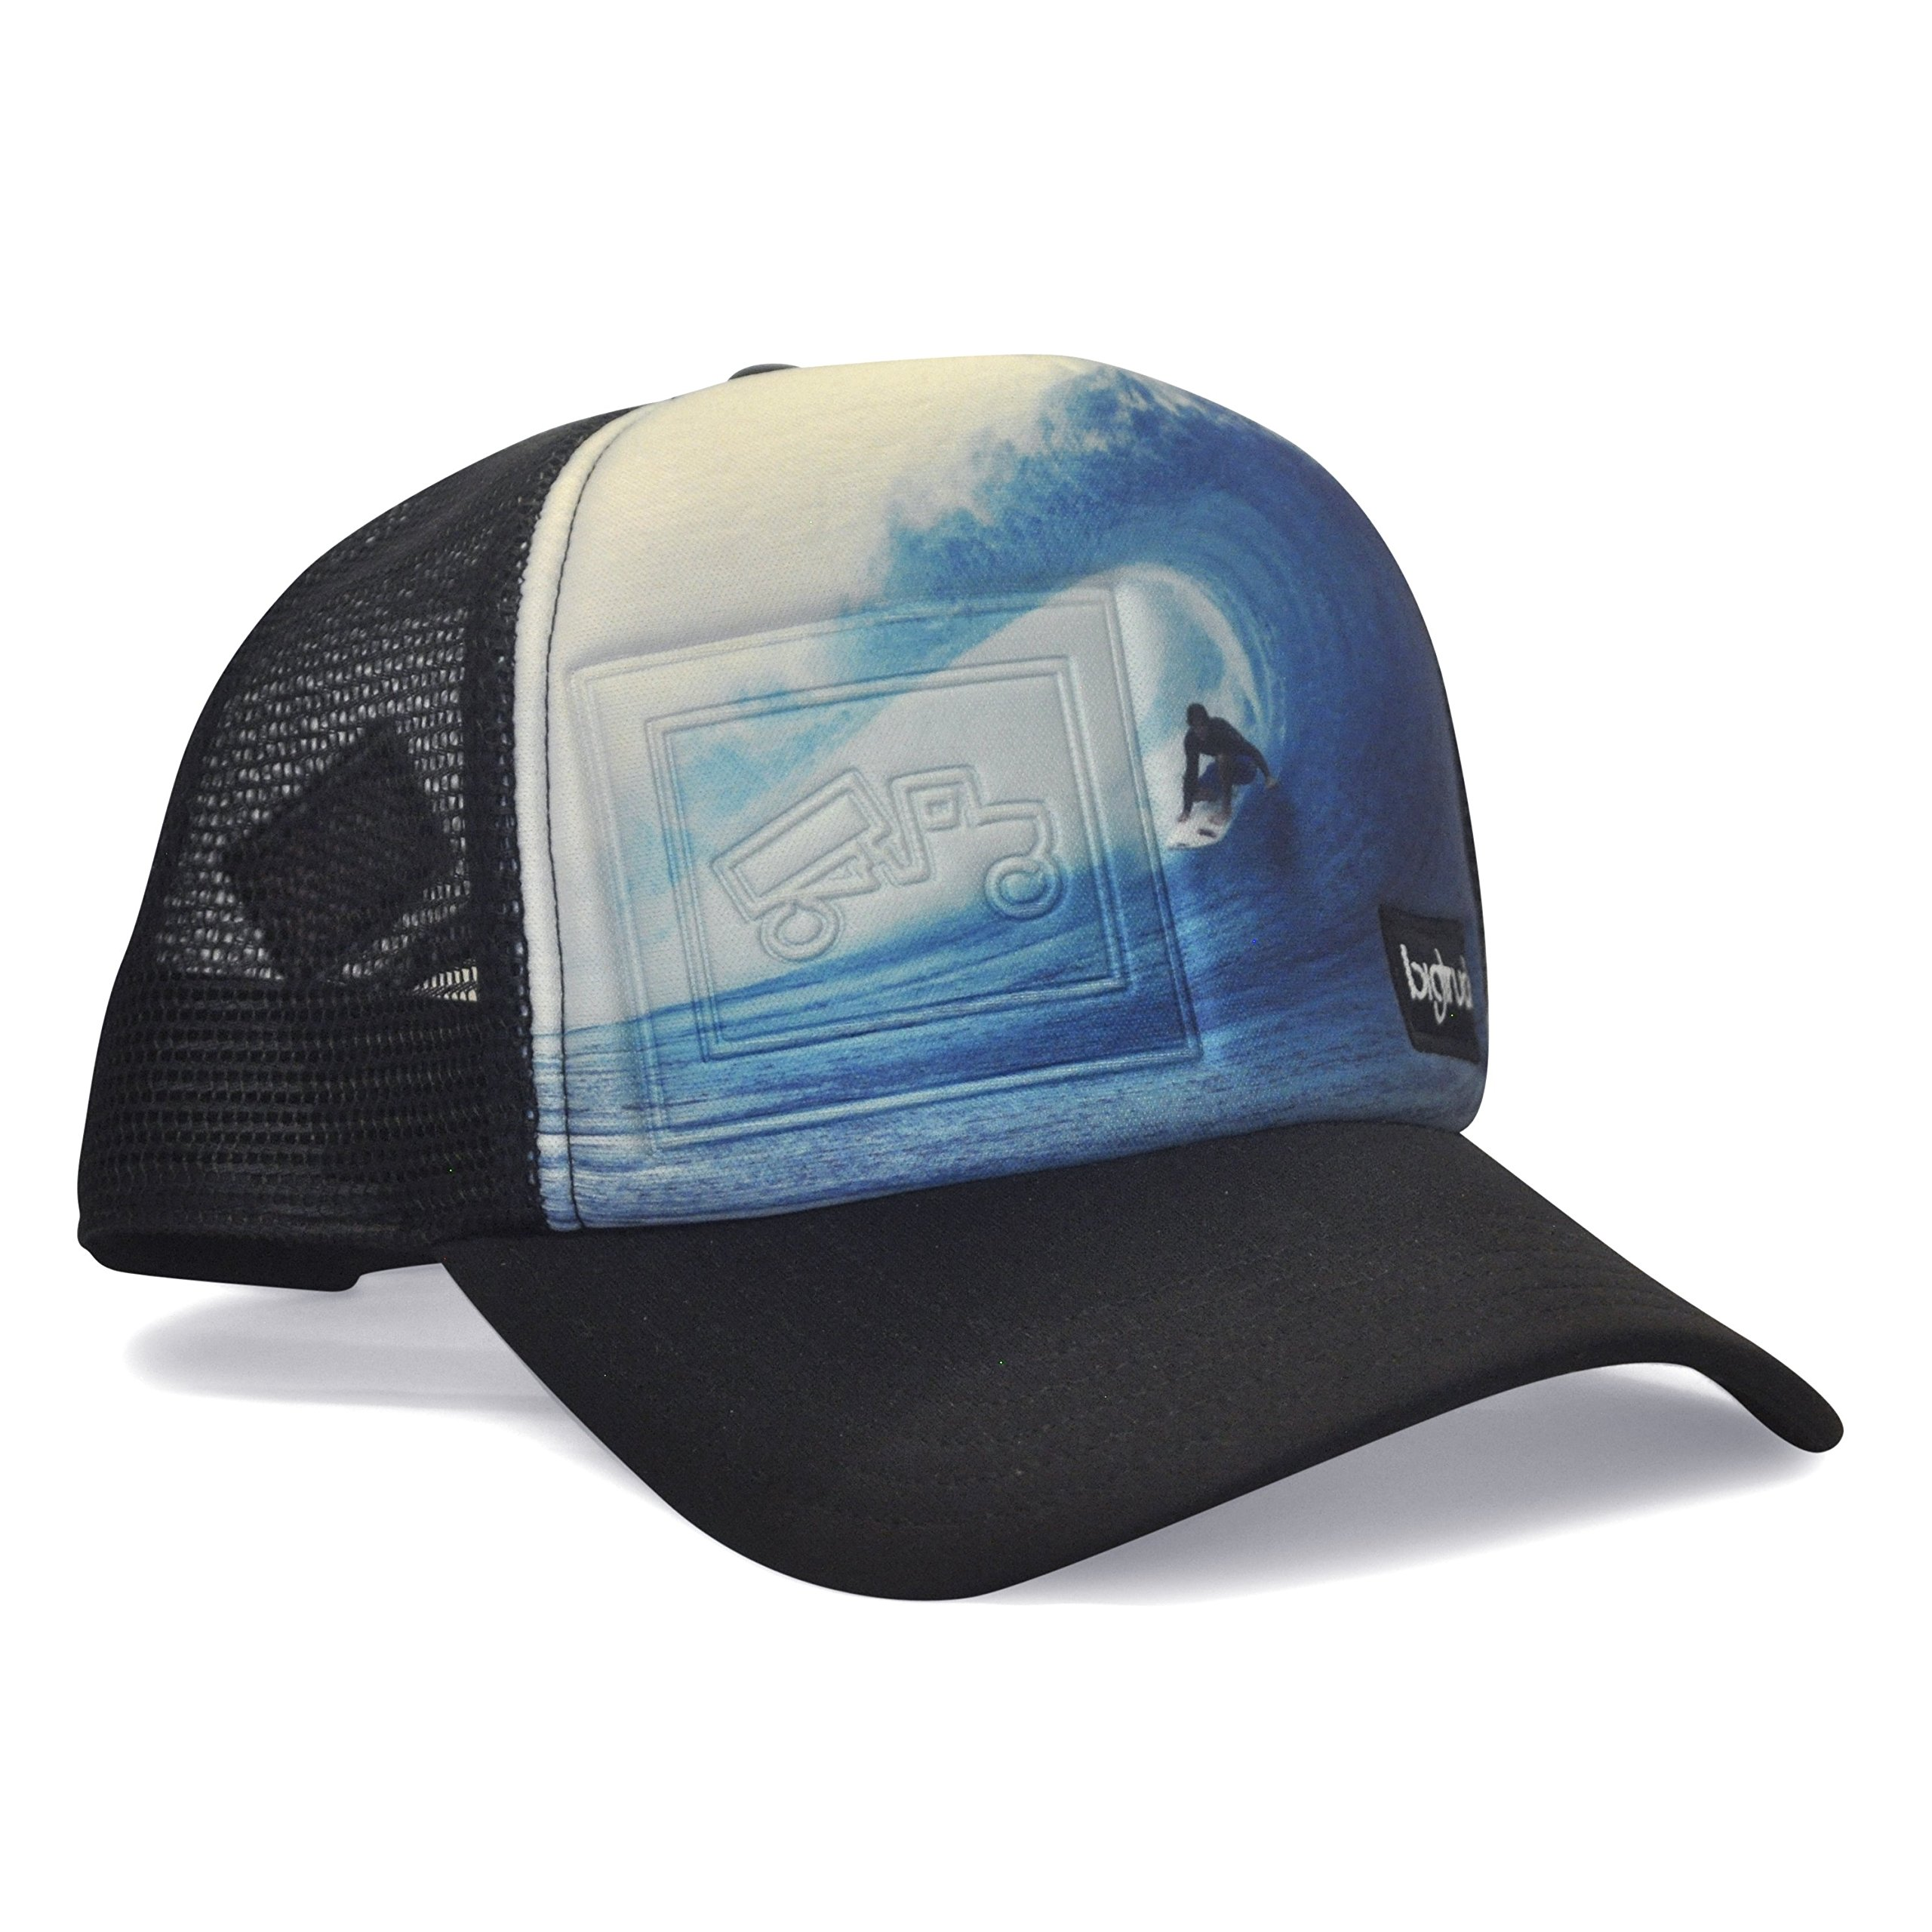 bigtruck Photography Series Original Trucker Hat, Blue Pitted, Adult